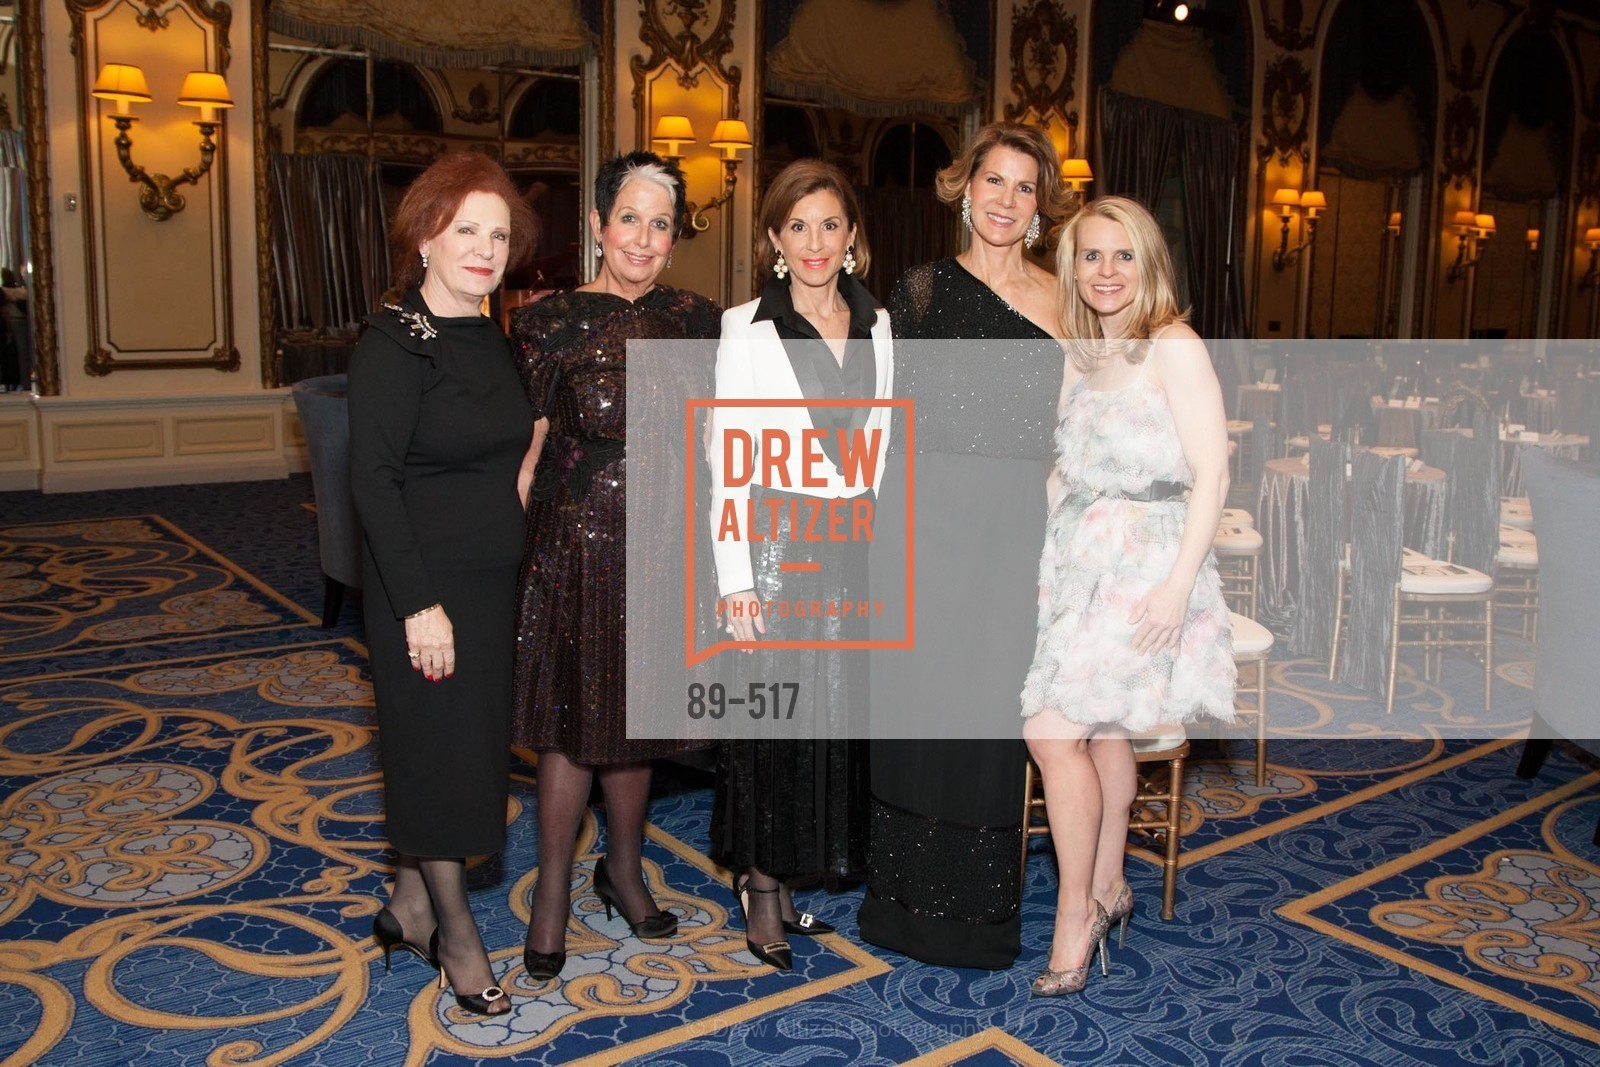 Romana Bracco, Karen Kubin, Marsha Monro, Katie Jarman, Jane Mudge, SAN FRANCISCO OPERA GUILD Presents POPera, US. US, April 10th, 2014,Drew Altizer, Drew Altizer Photography, full-service event agency, private events, San Francisco photographer, photographer California